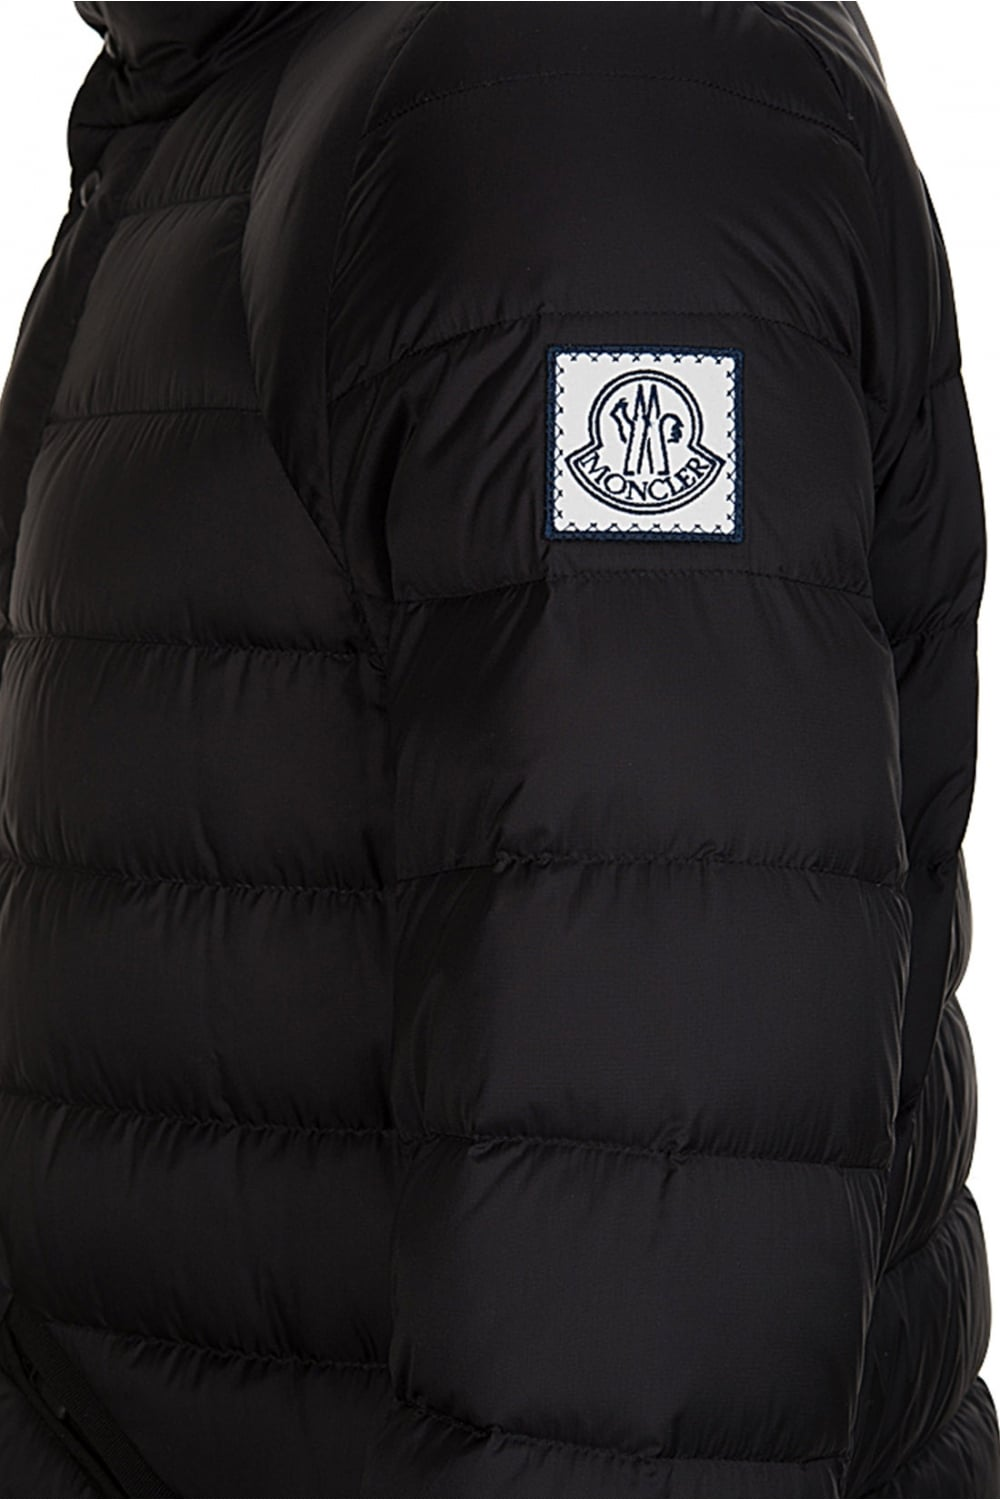 MONCLER Moncler Gamme Bleu Down Jacket Black - MONCLER from Circle Fashion UK